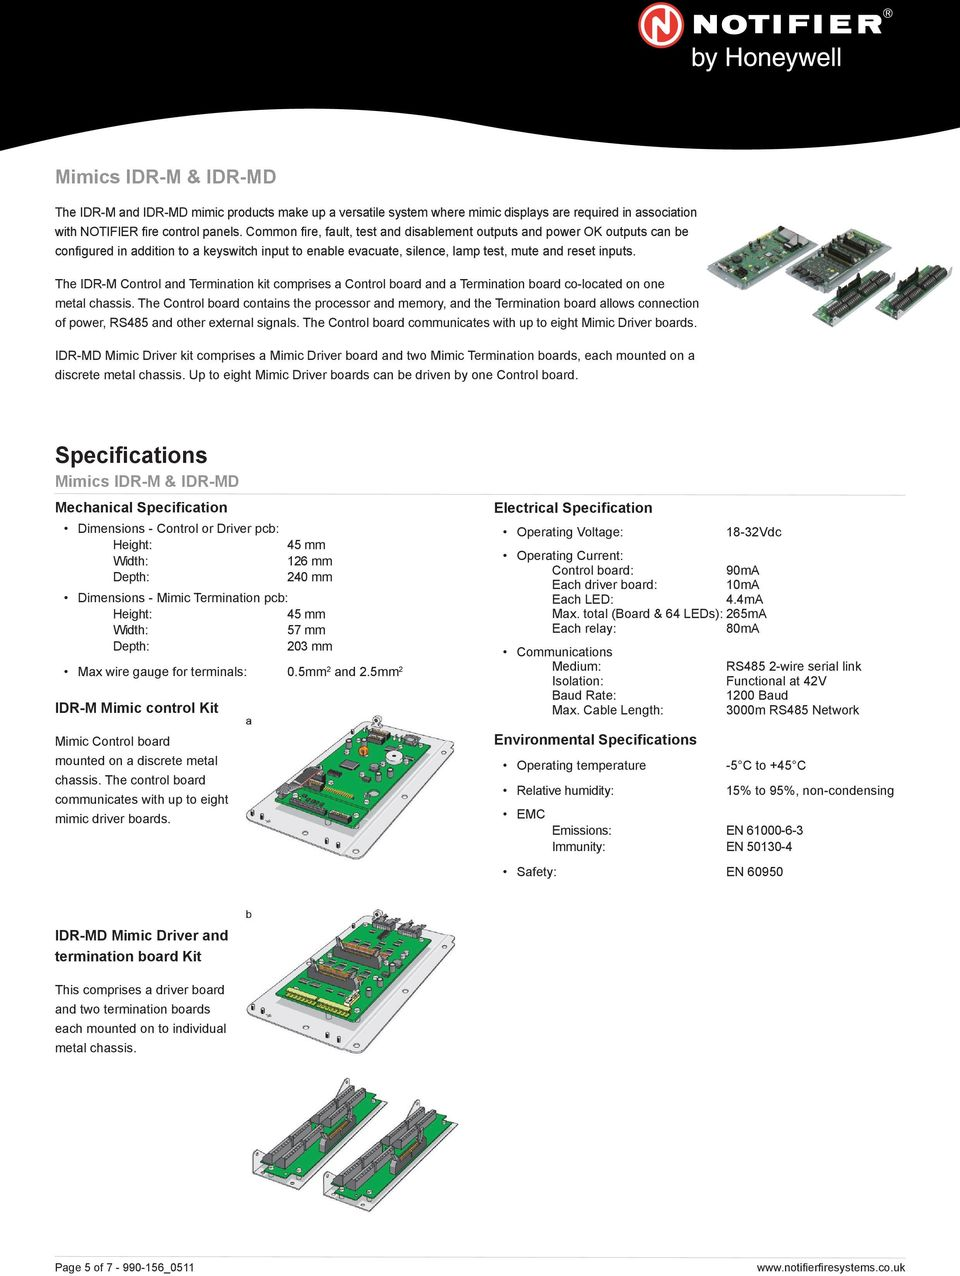 The IDR-M Control and Termination kit comprises a Control board and a Termination board co-located on one metal chassis.